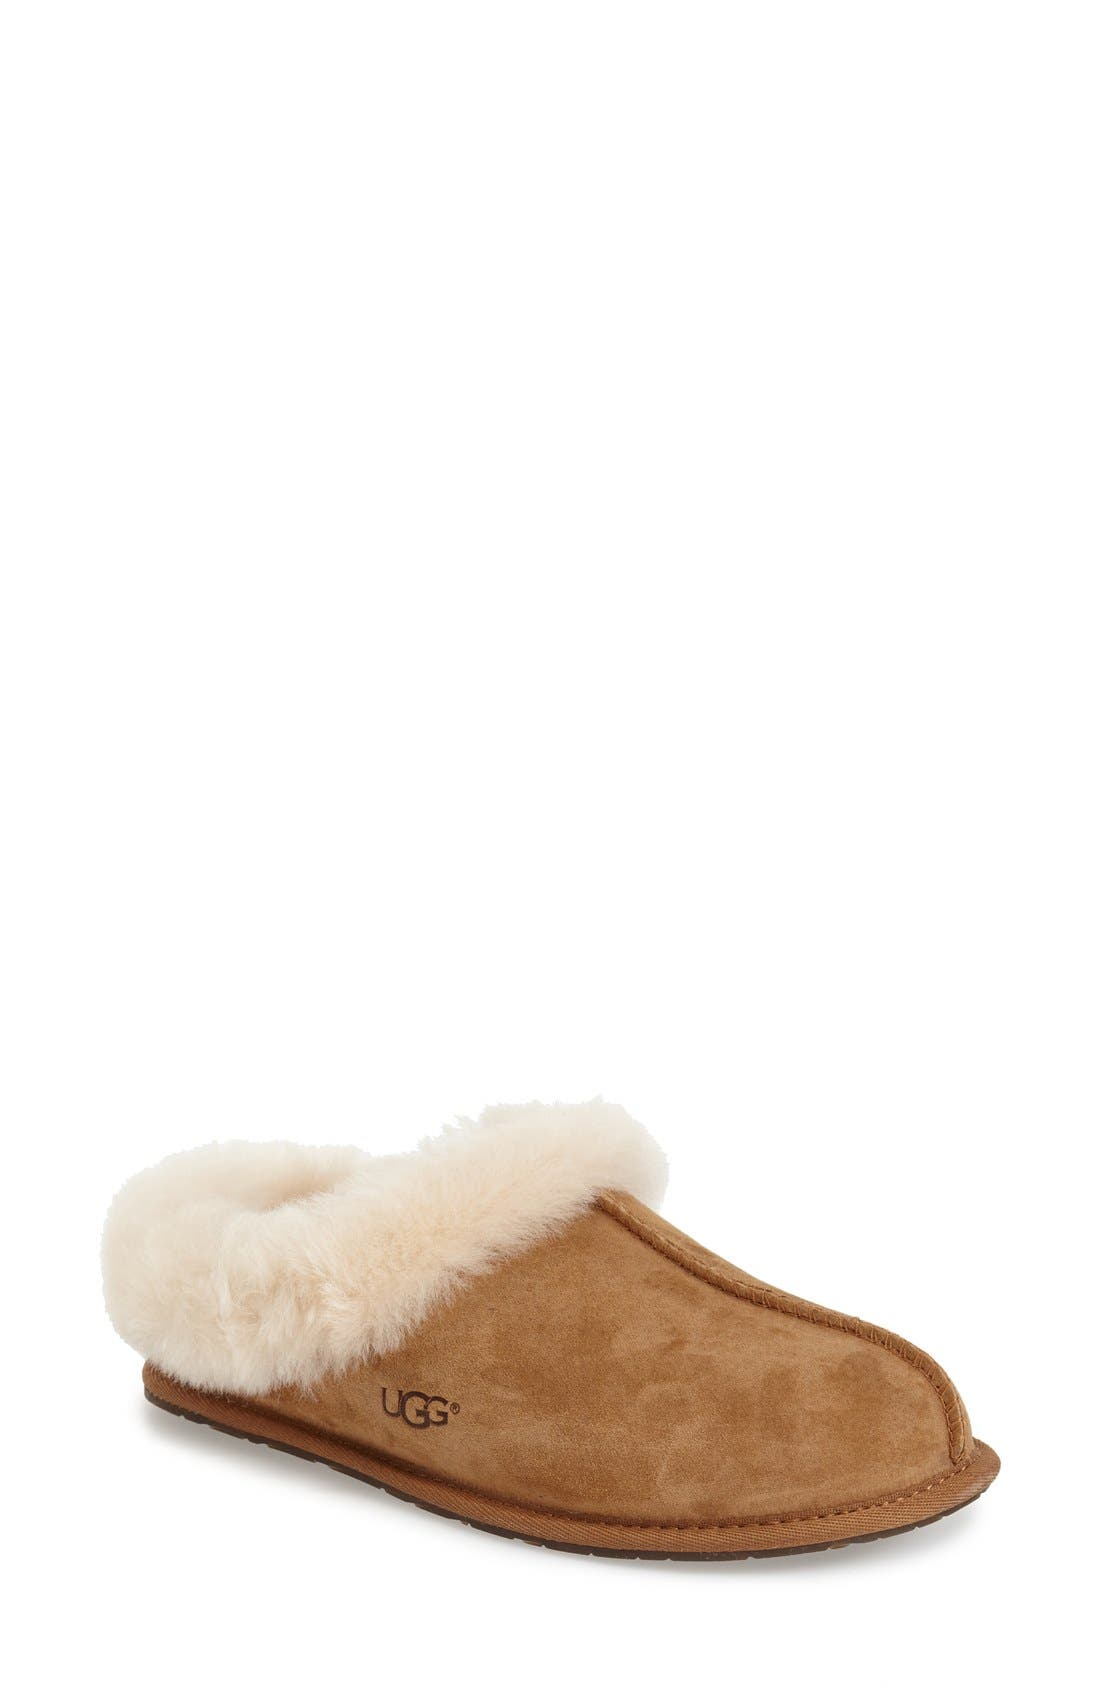 Main Image - UGG® Moraene Water Resistant Slipper (Women)